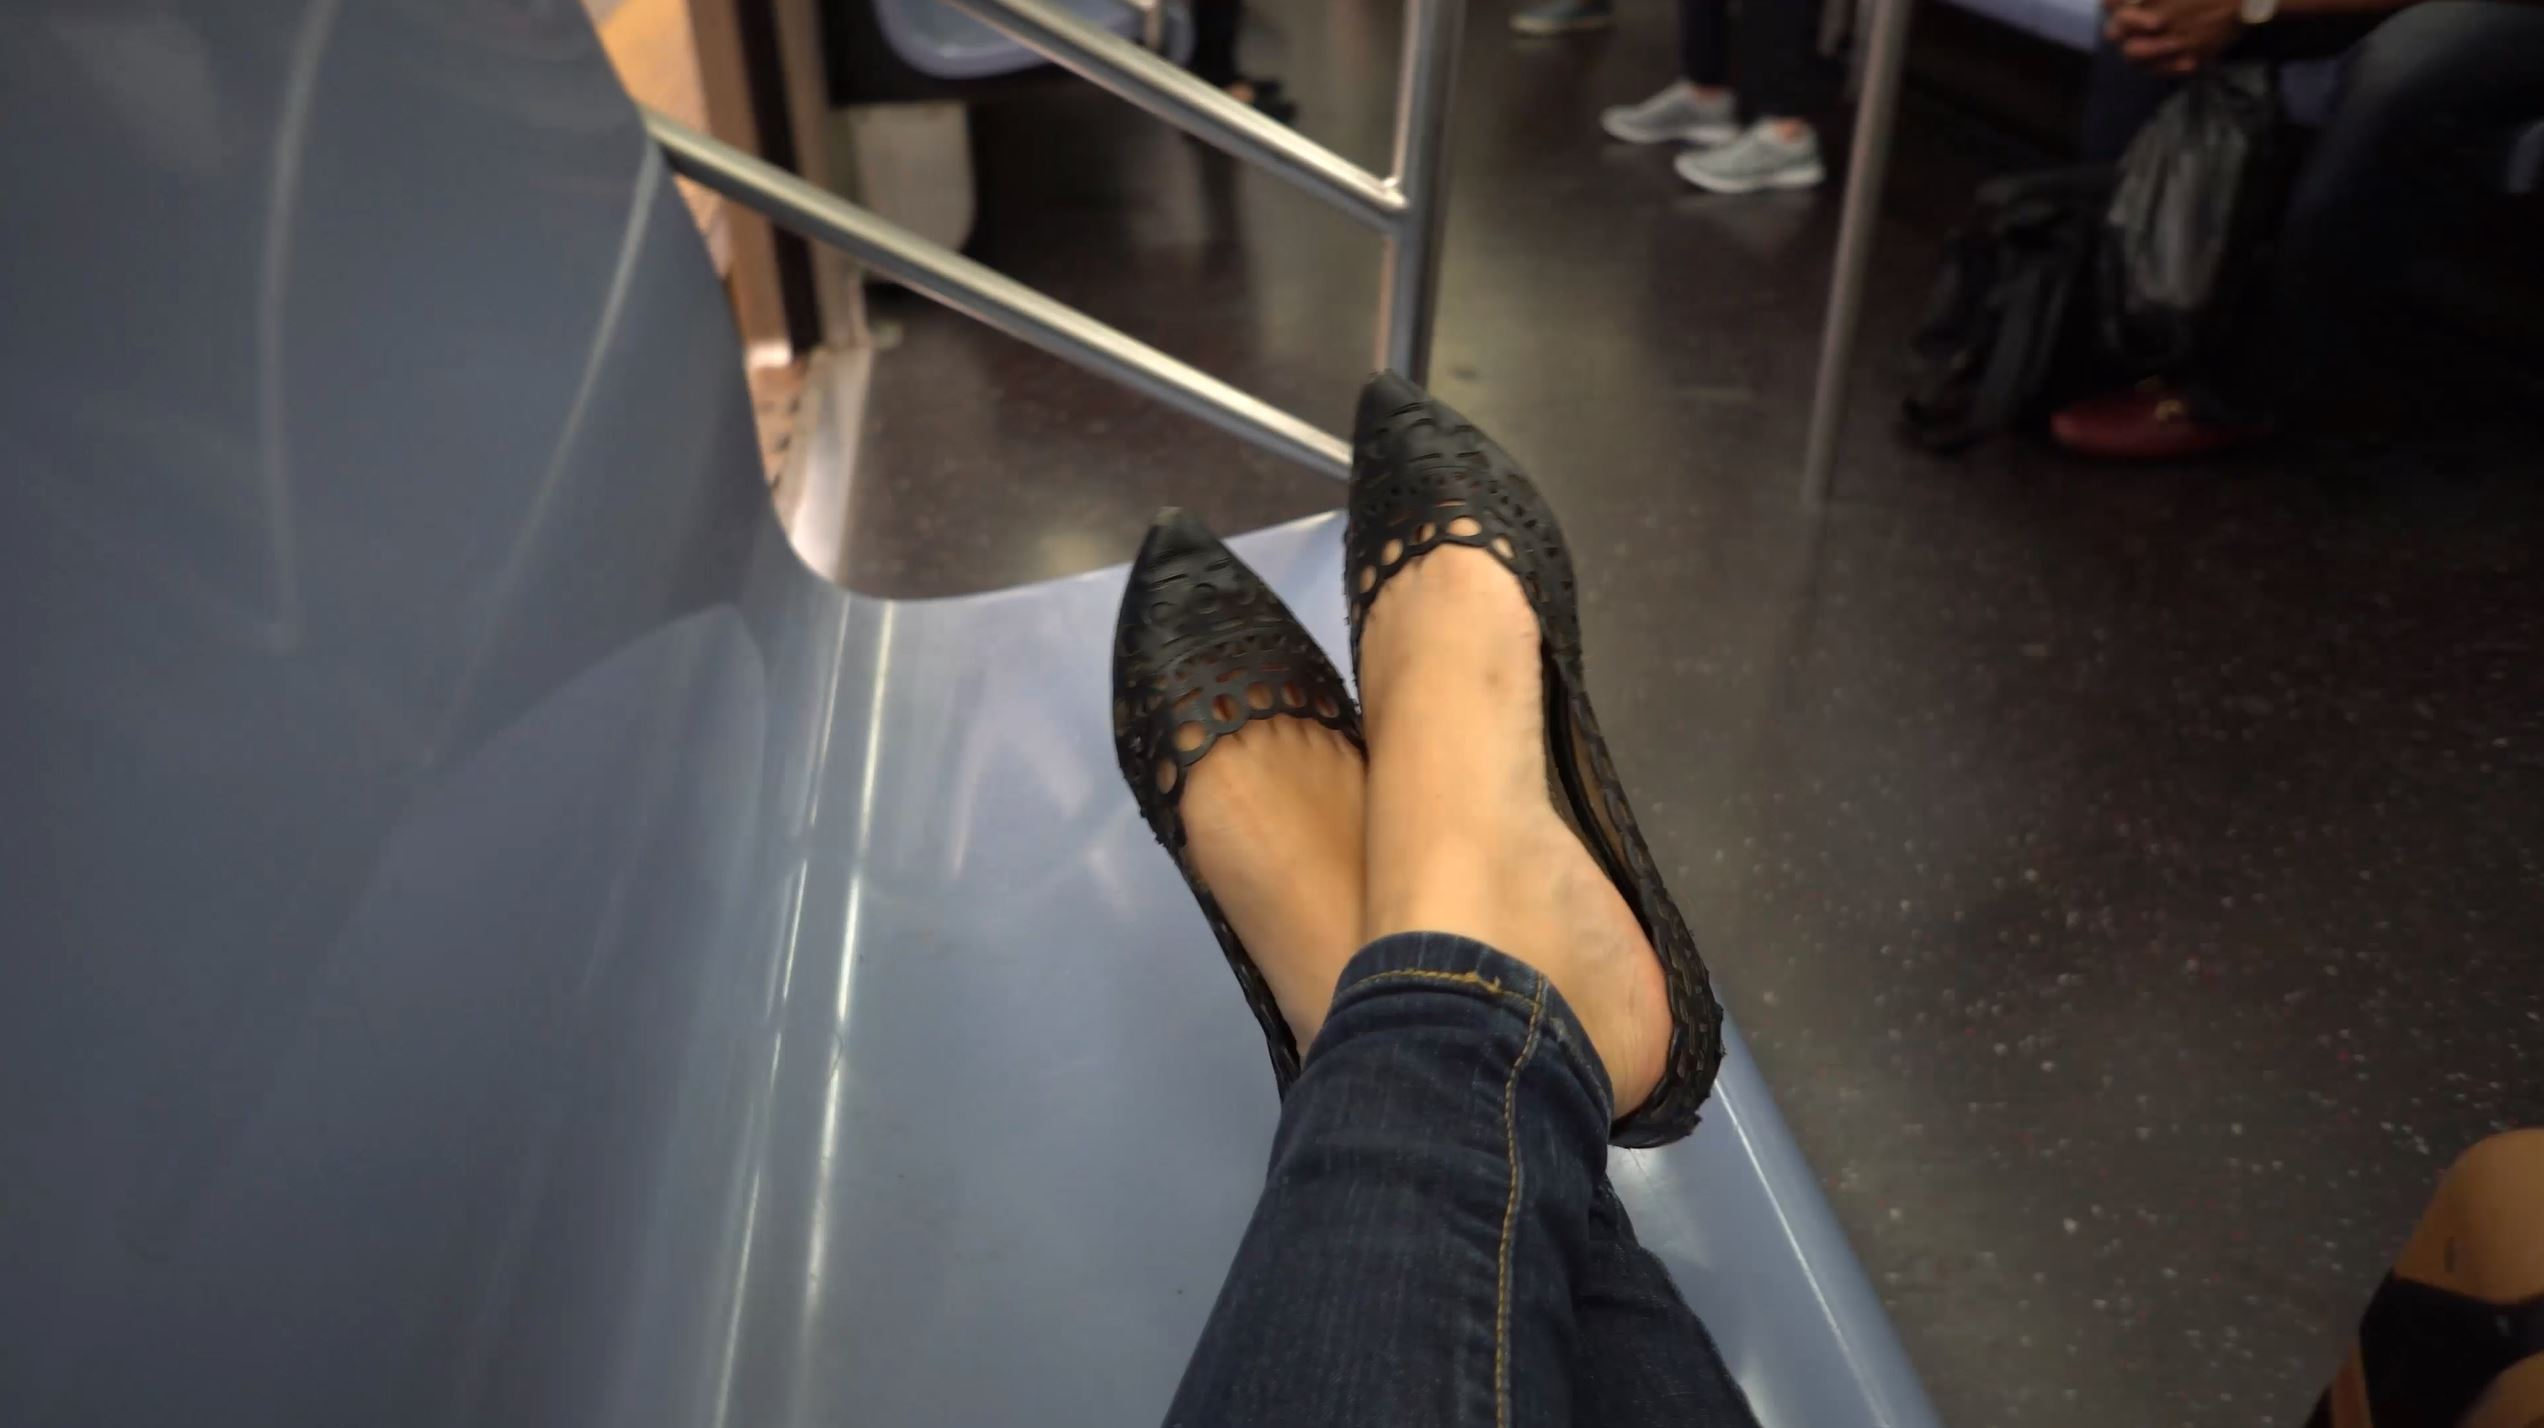 25 Things You Need to Know About the NYC Subway feet on seat